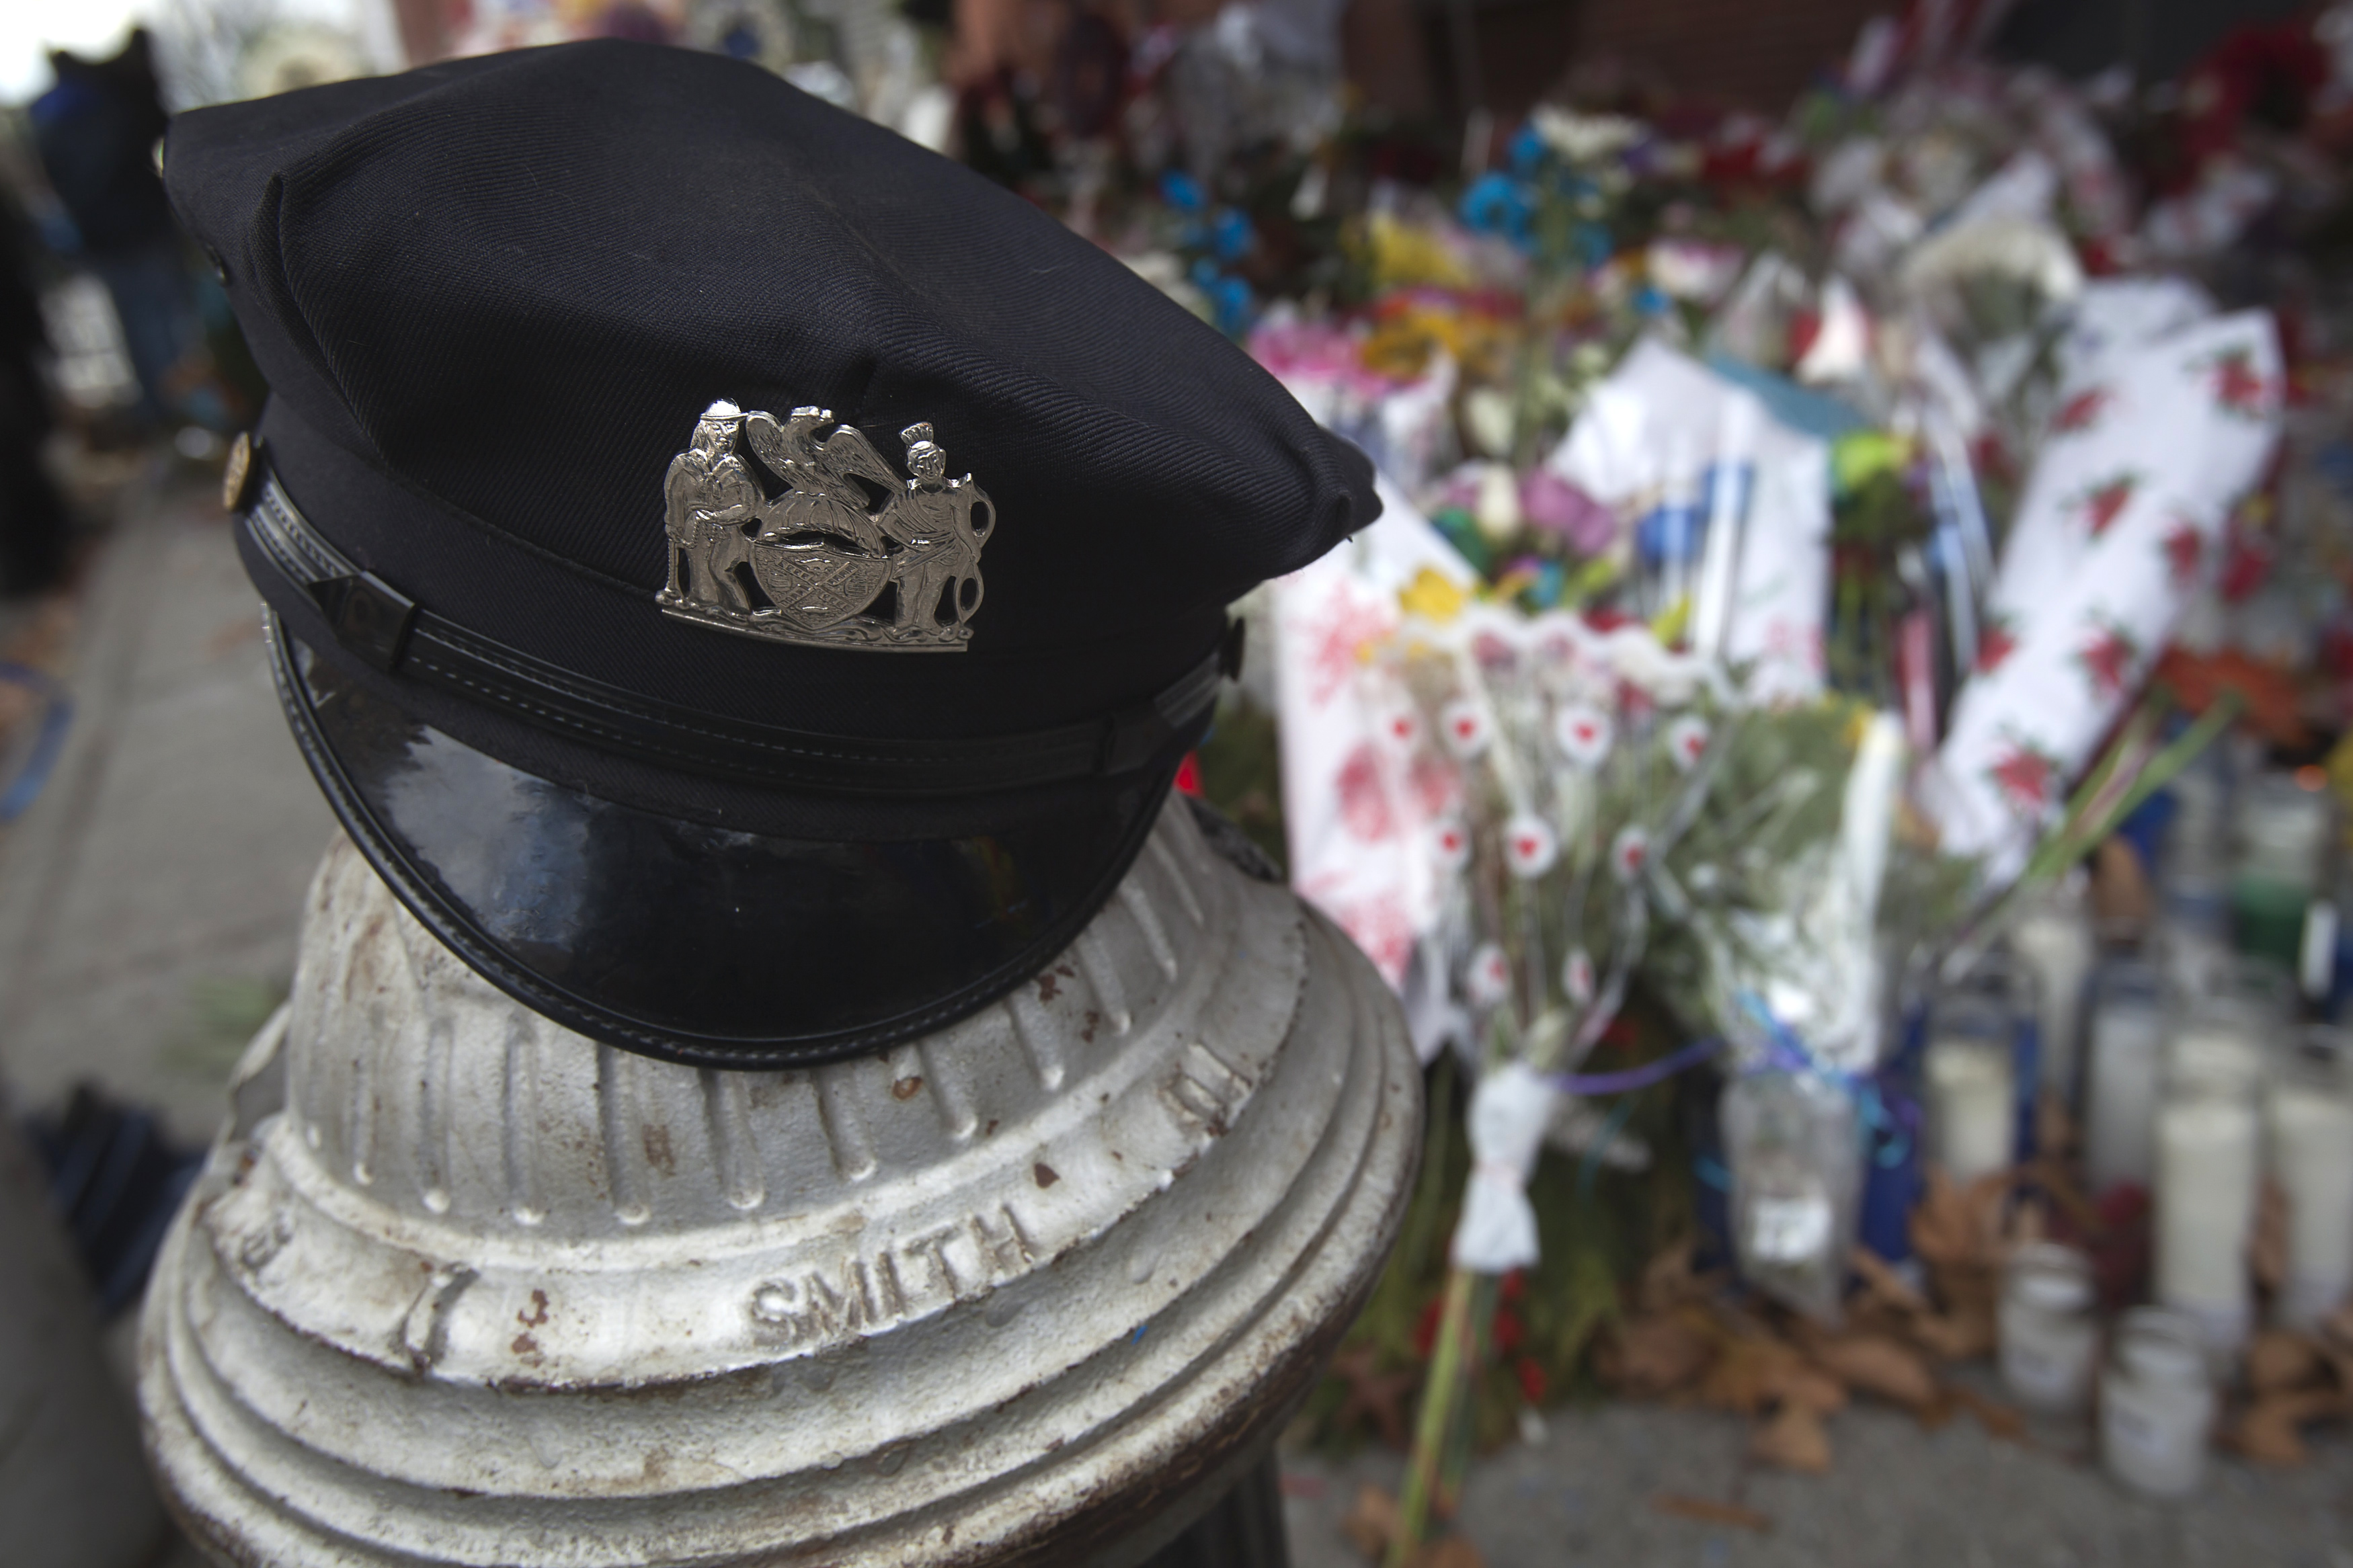 Nypd Officer Dies Today Rtrjd